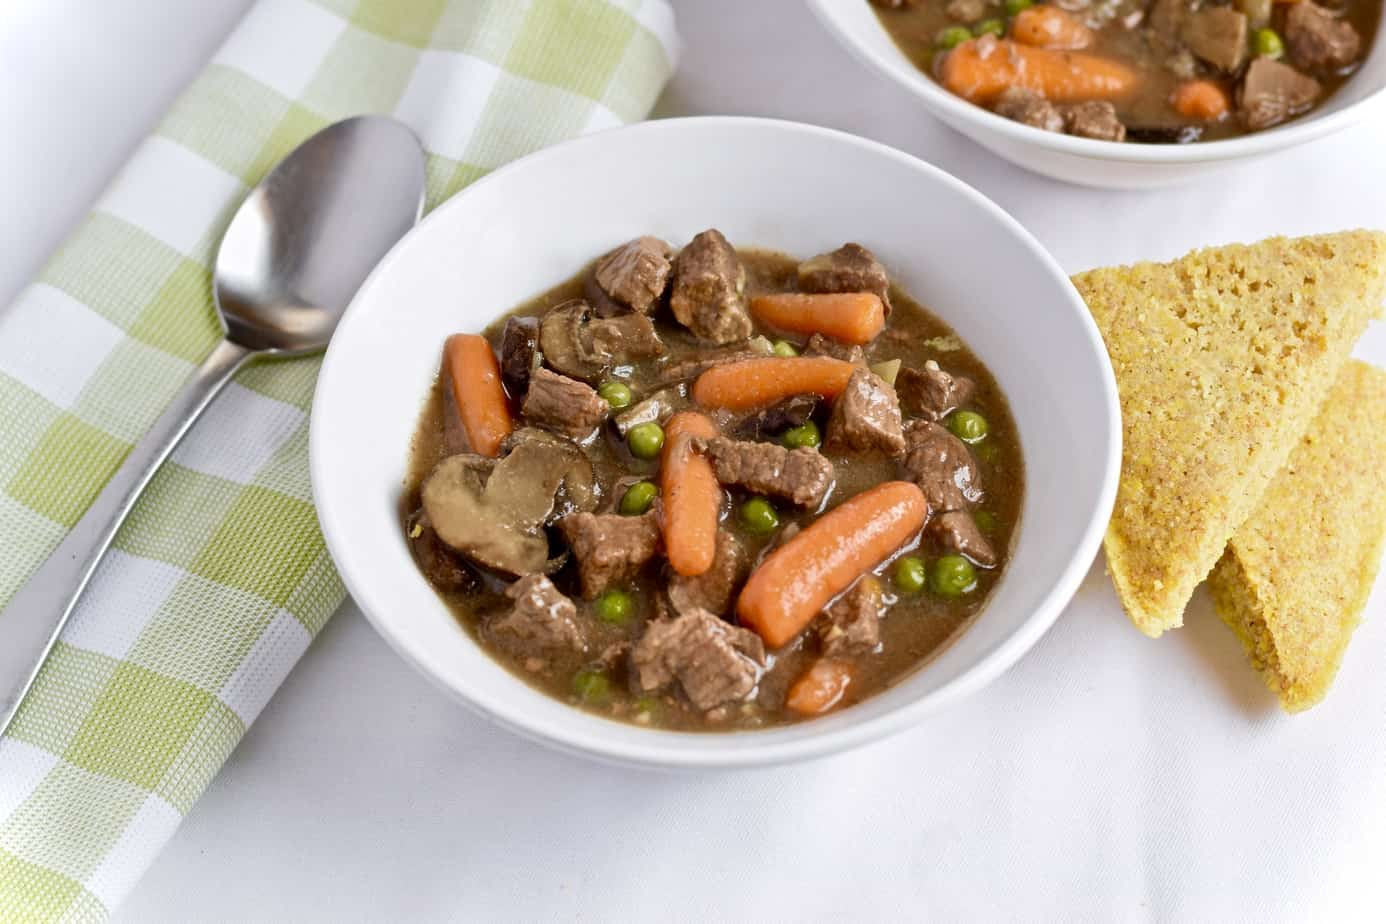 Gluten-free, low-carb slow cooker Beef and mushroom stew in a bowl with cornbread.